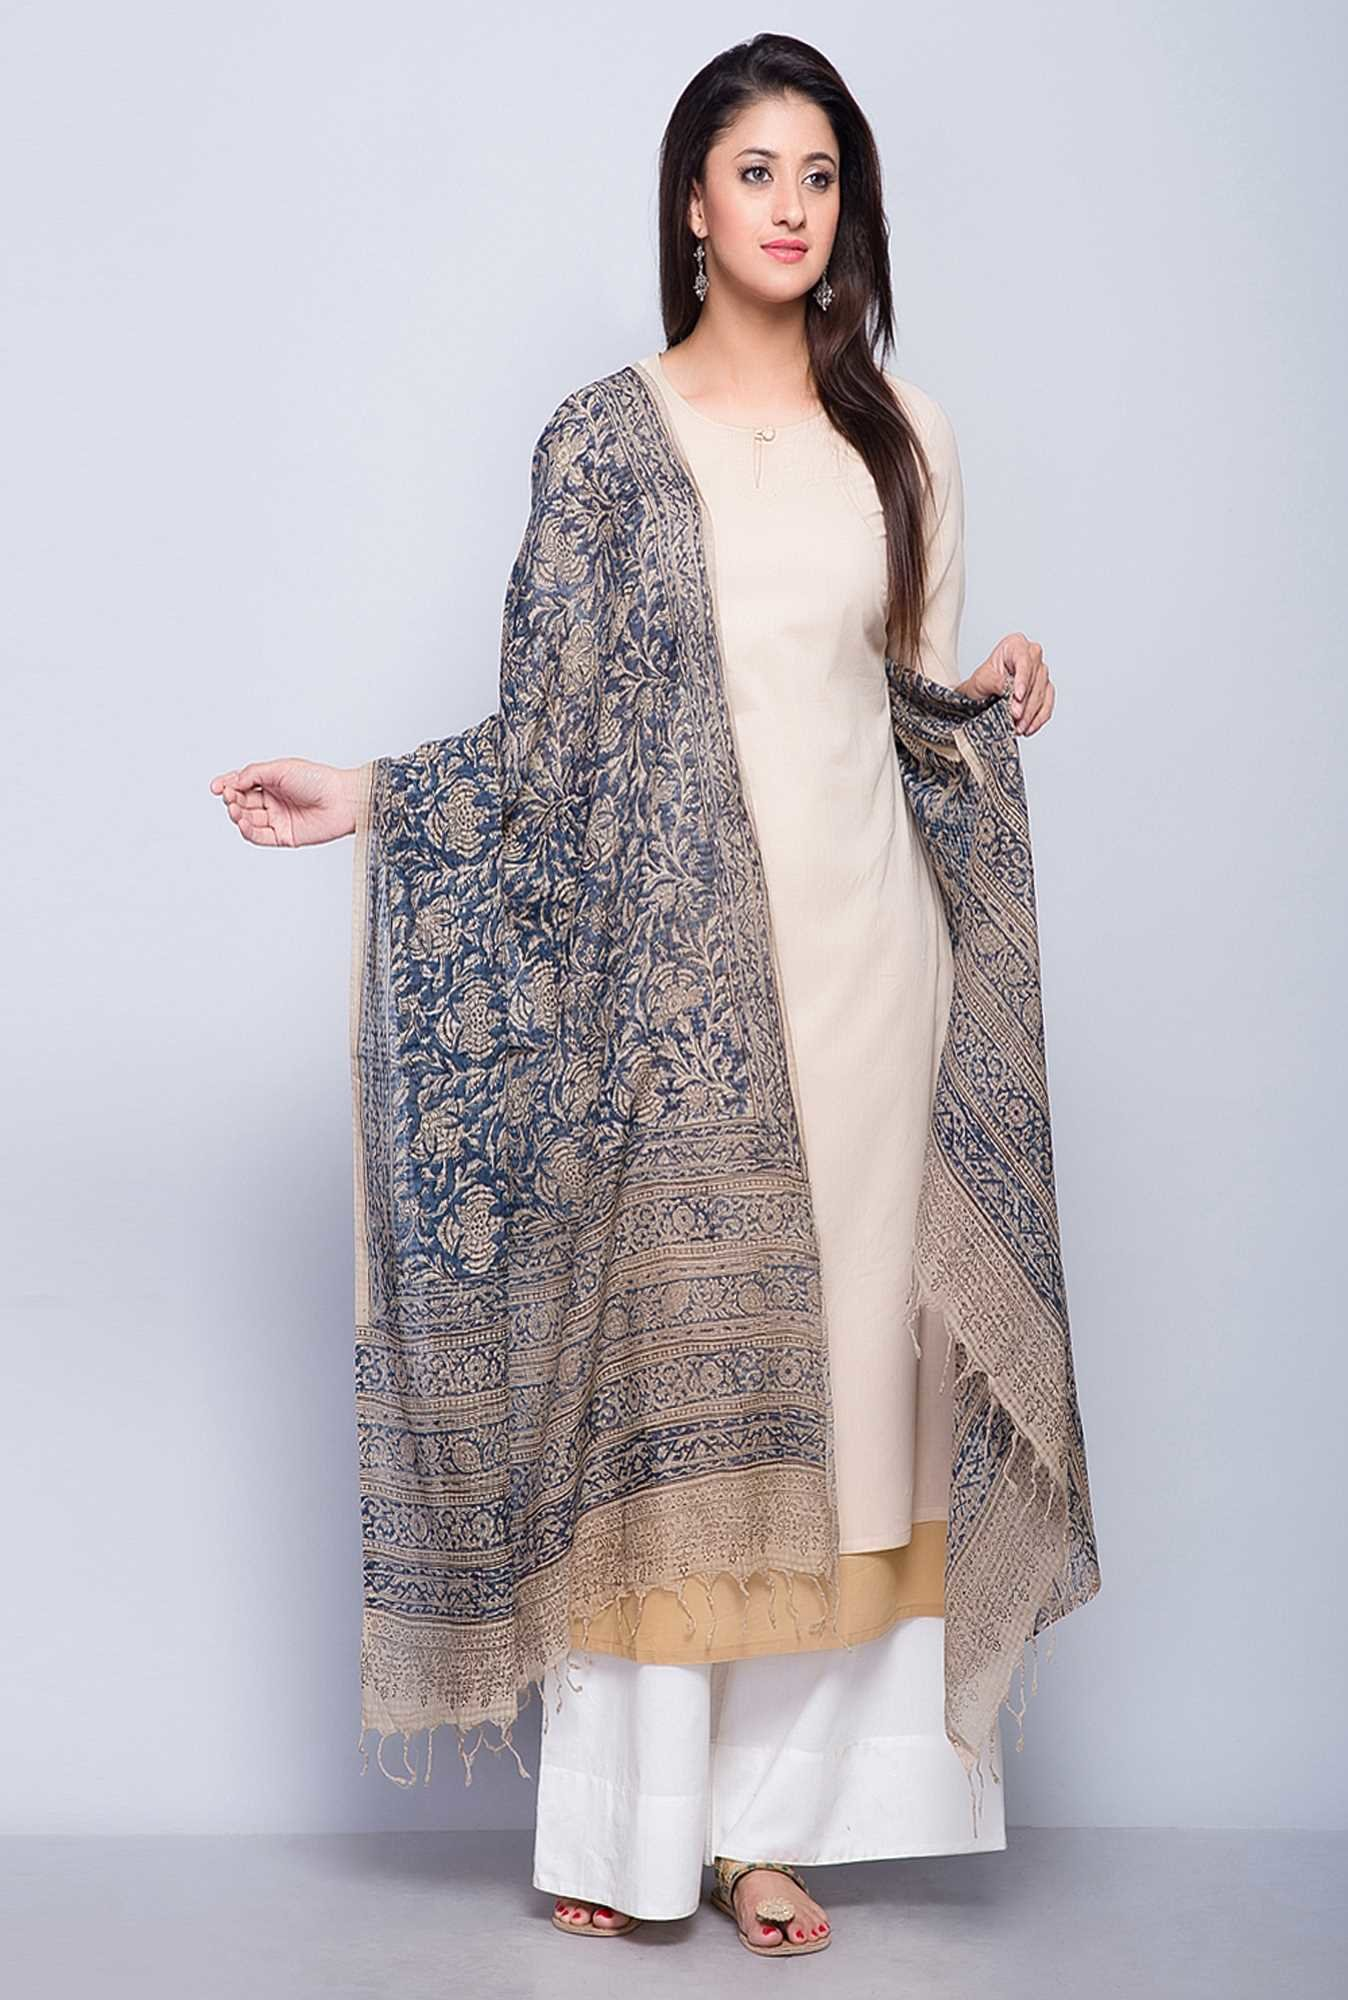 Fabindia Blue Cotton Printed Kalamkari Phool Dupatta